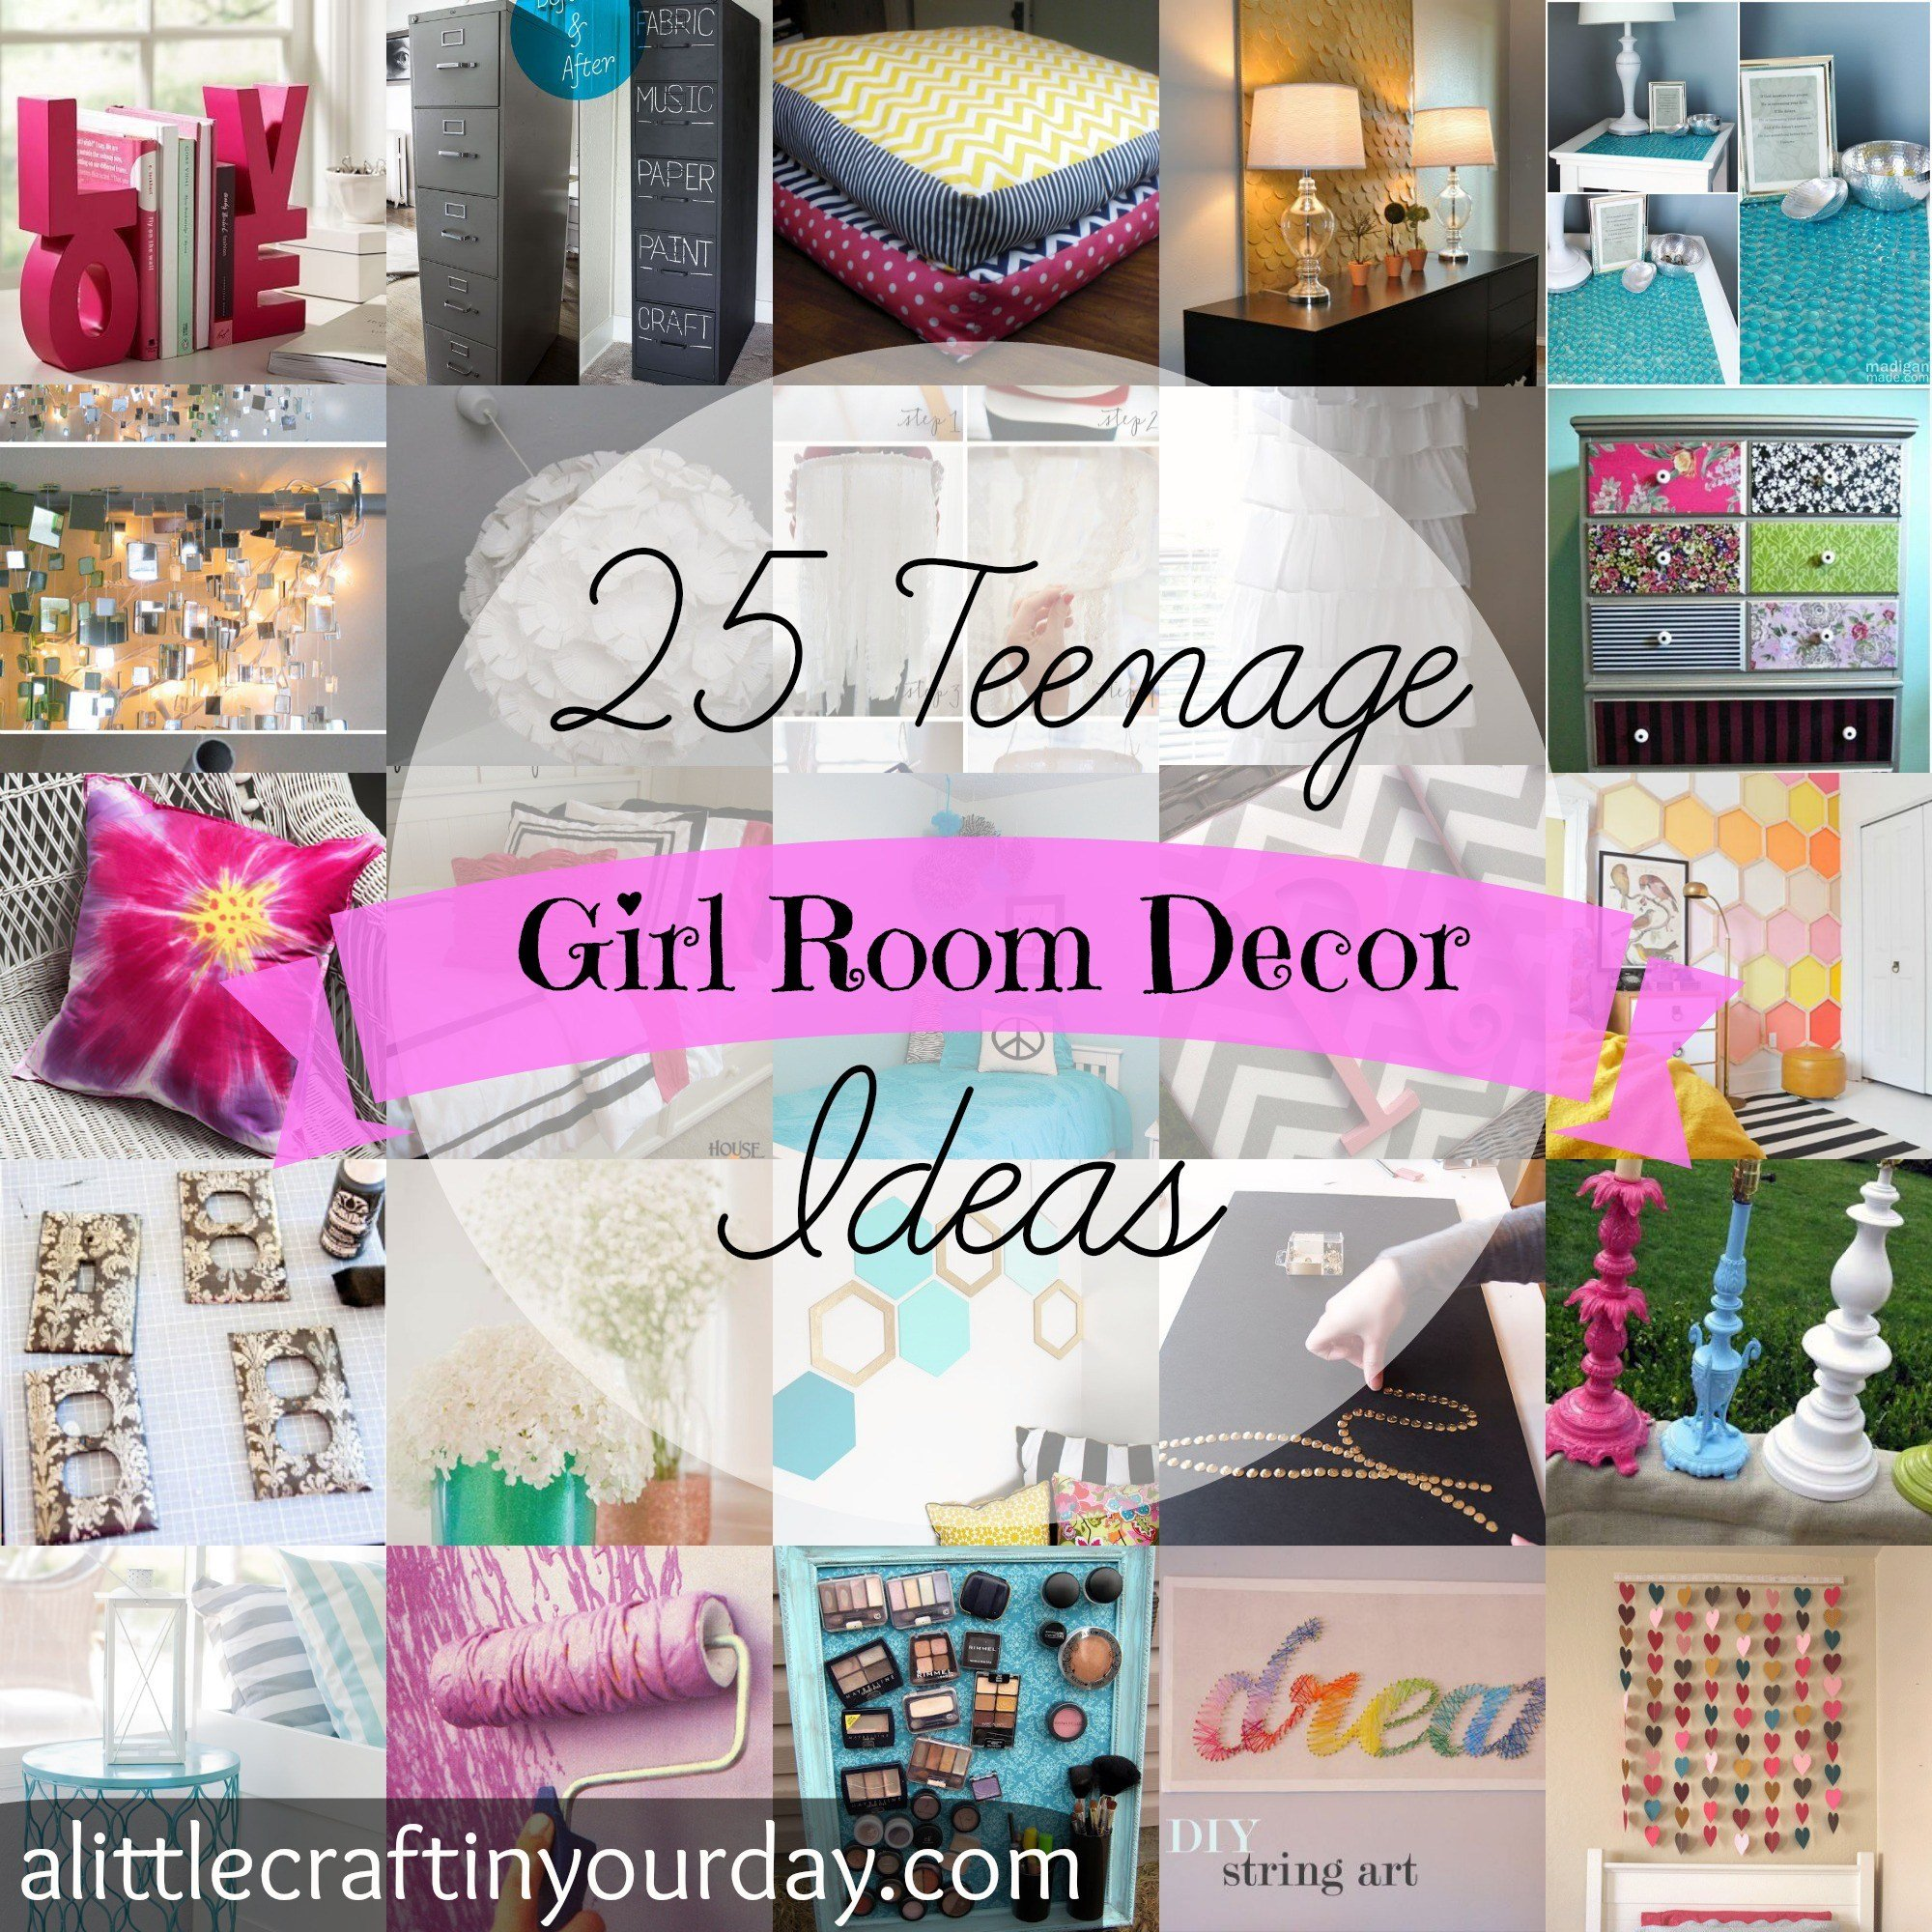 Best 12 Diy Spring Room Decor Ideas – Craft T**N With Pictures